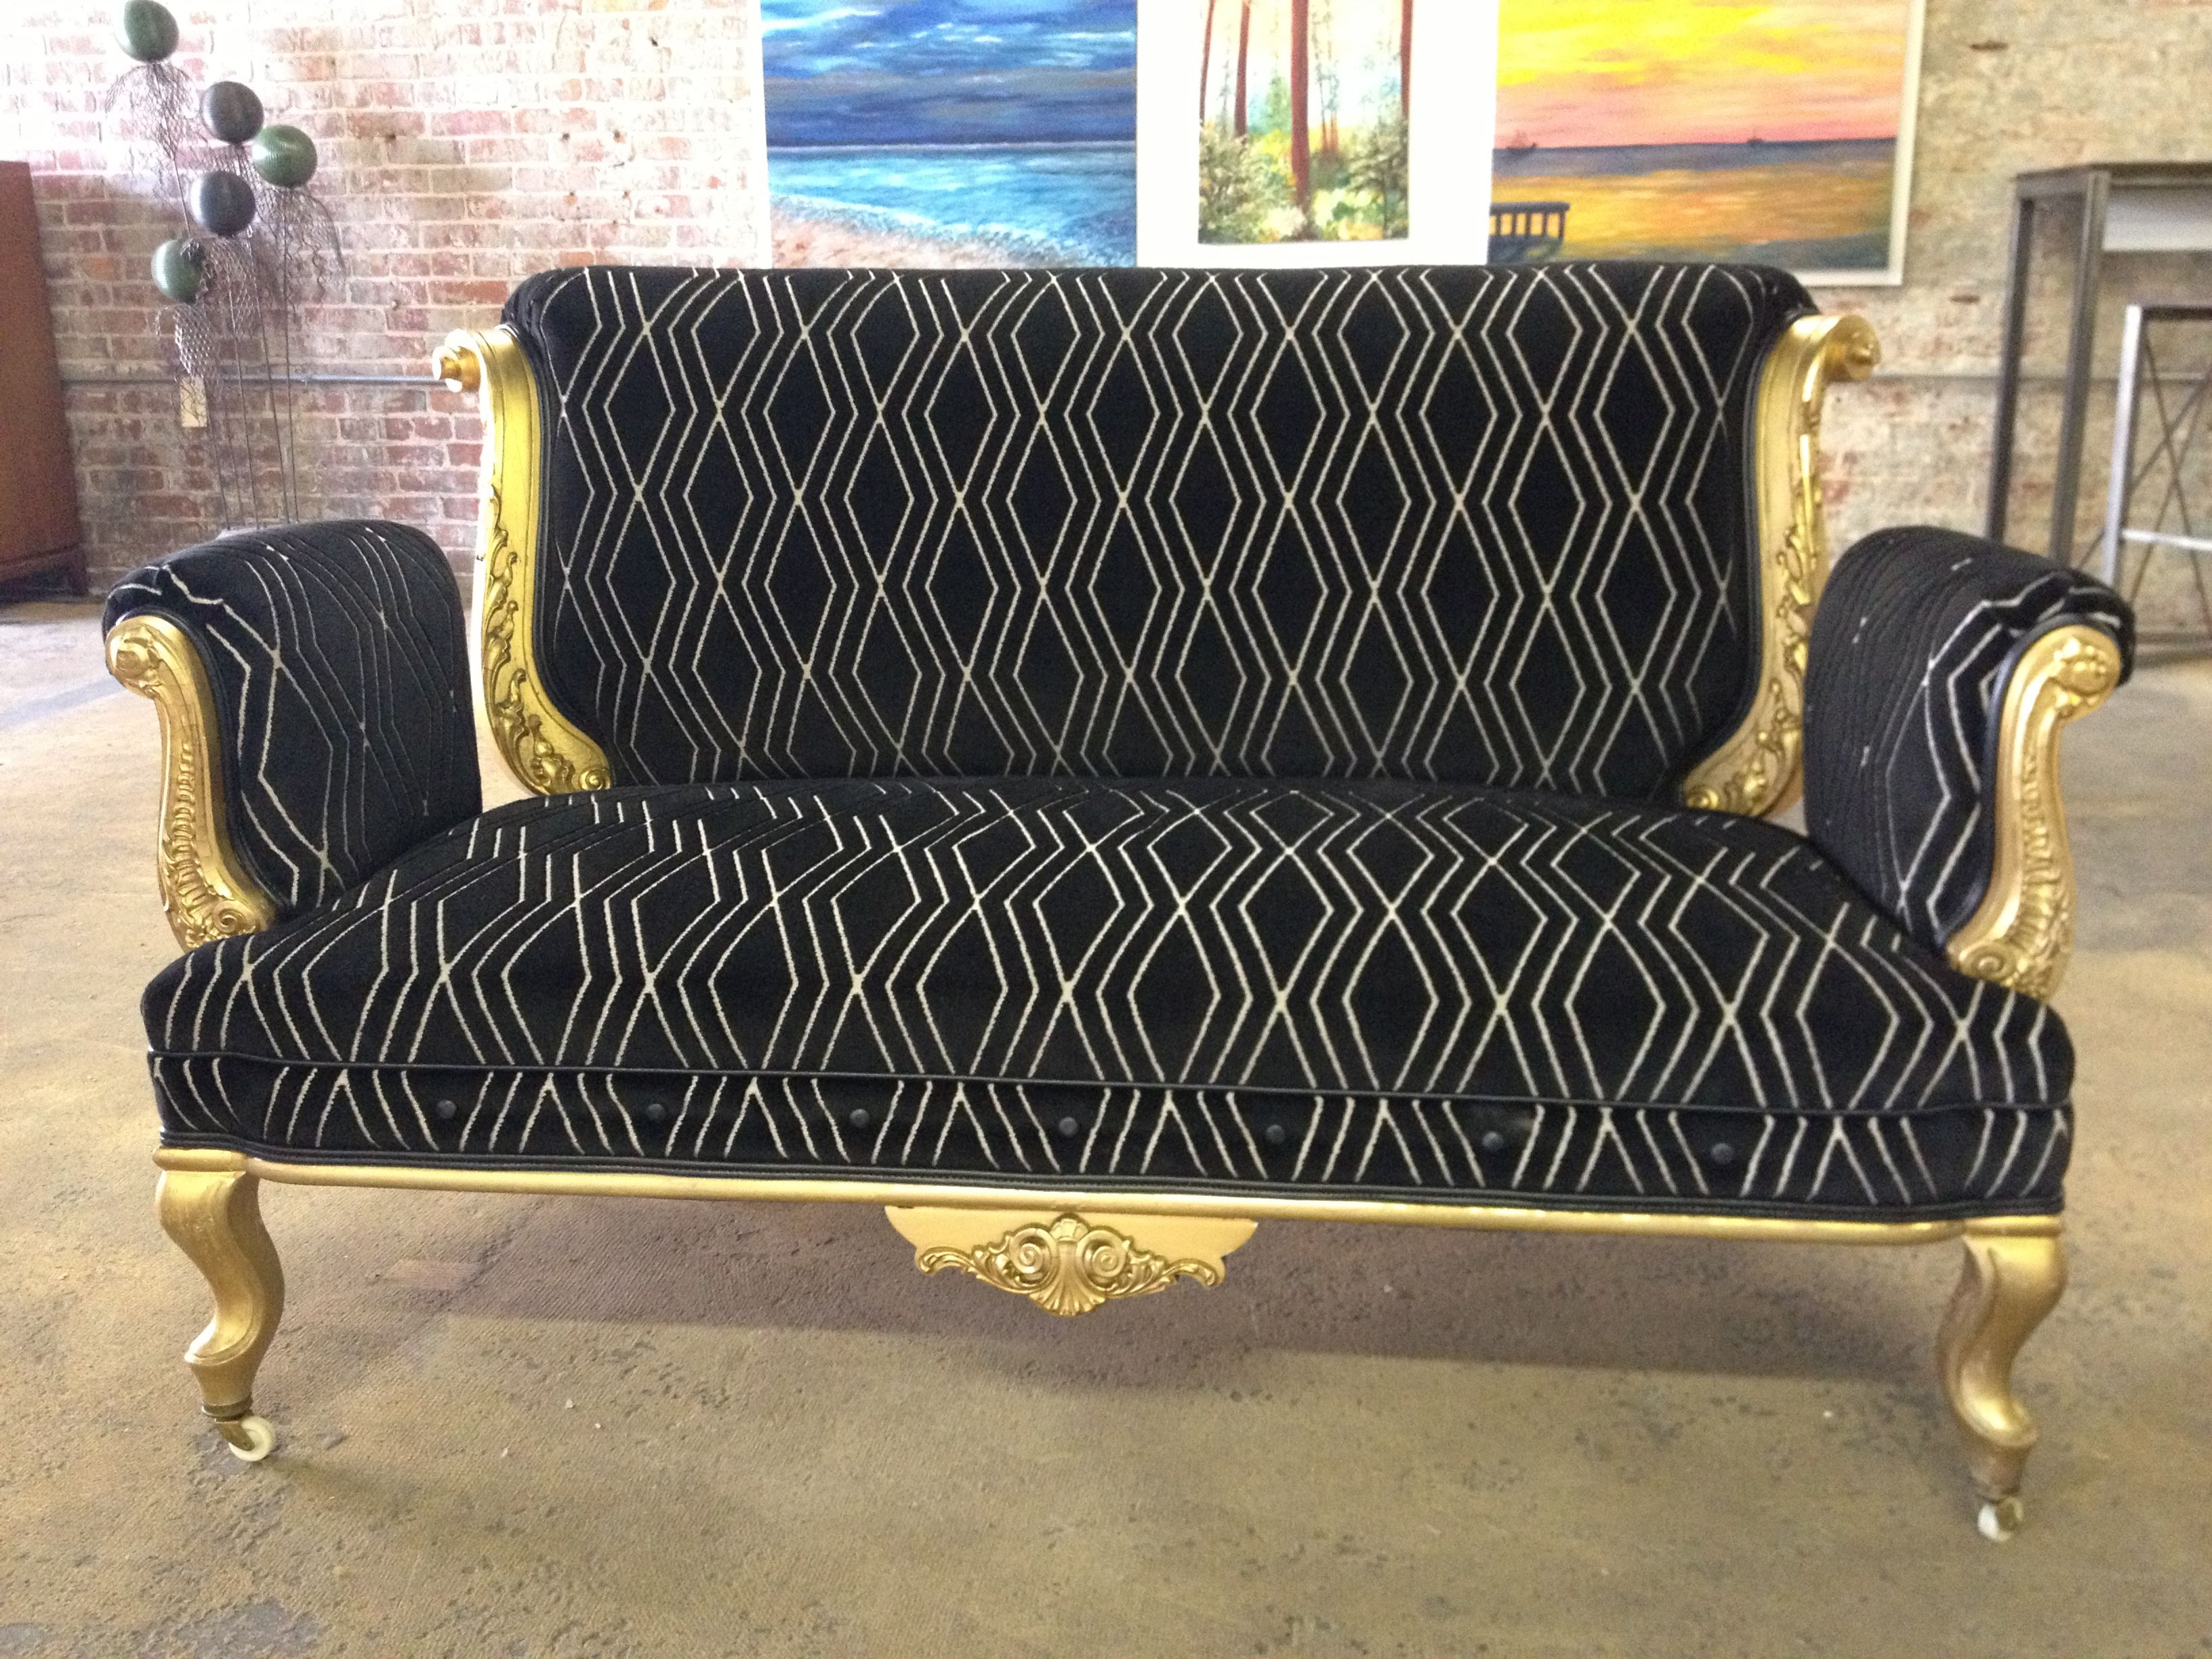 1800s Gilded Italianate Settee Reupholstered In Romo Velvet By Sit On It A Chair Gallery Kansas City Love Seat Reupholster Furniture